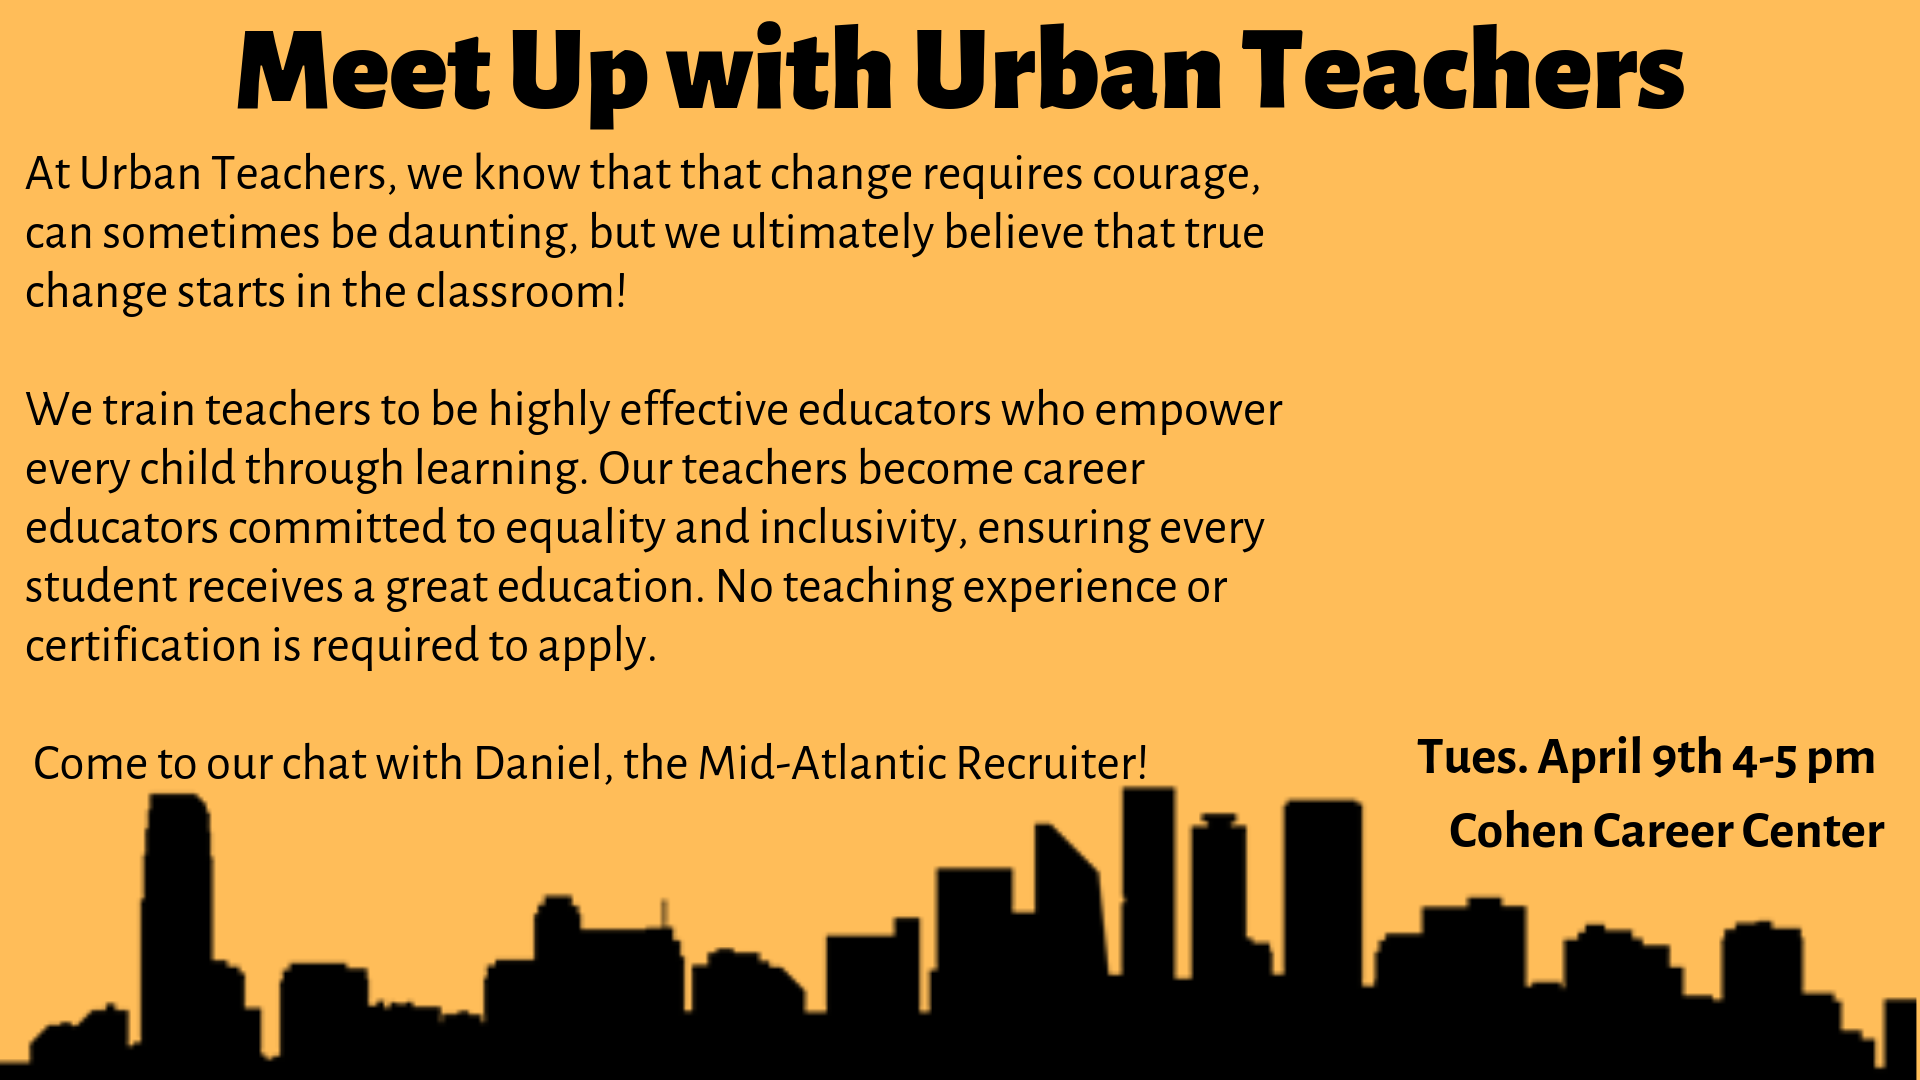 meet-up-with-urban-teachers-s19-dh.png